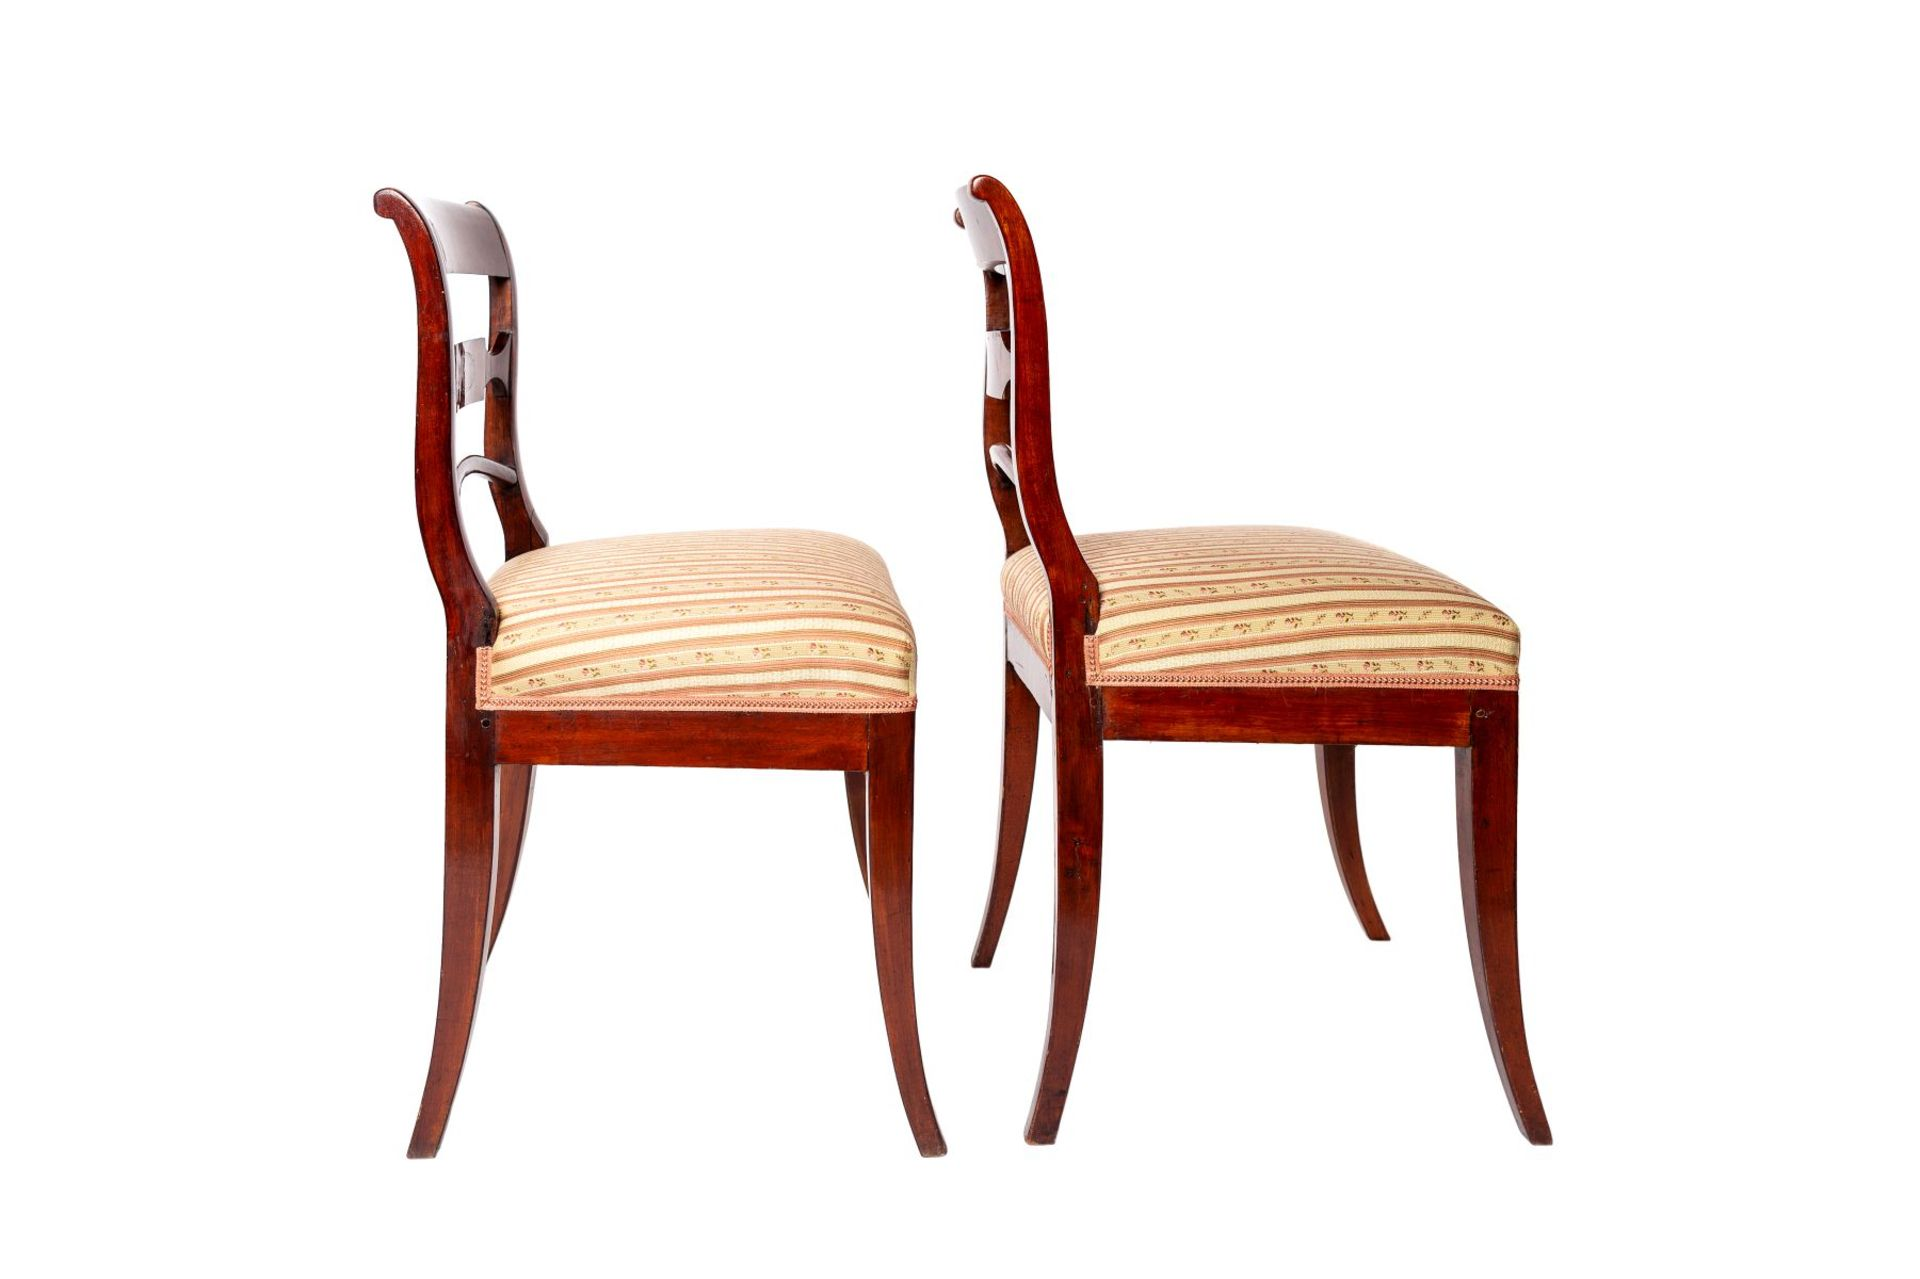 Two Biedermeier chairs - Image 2 of 4